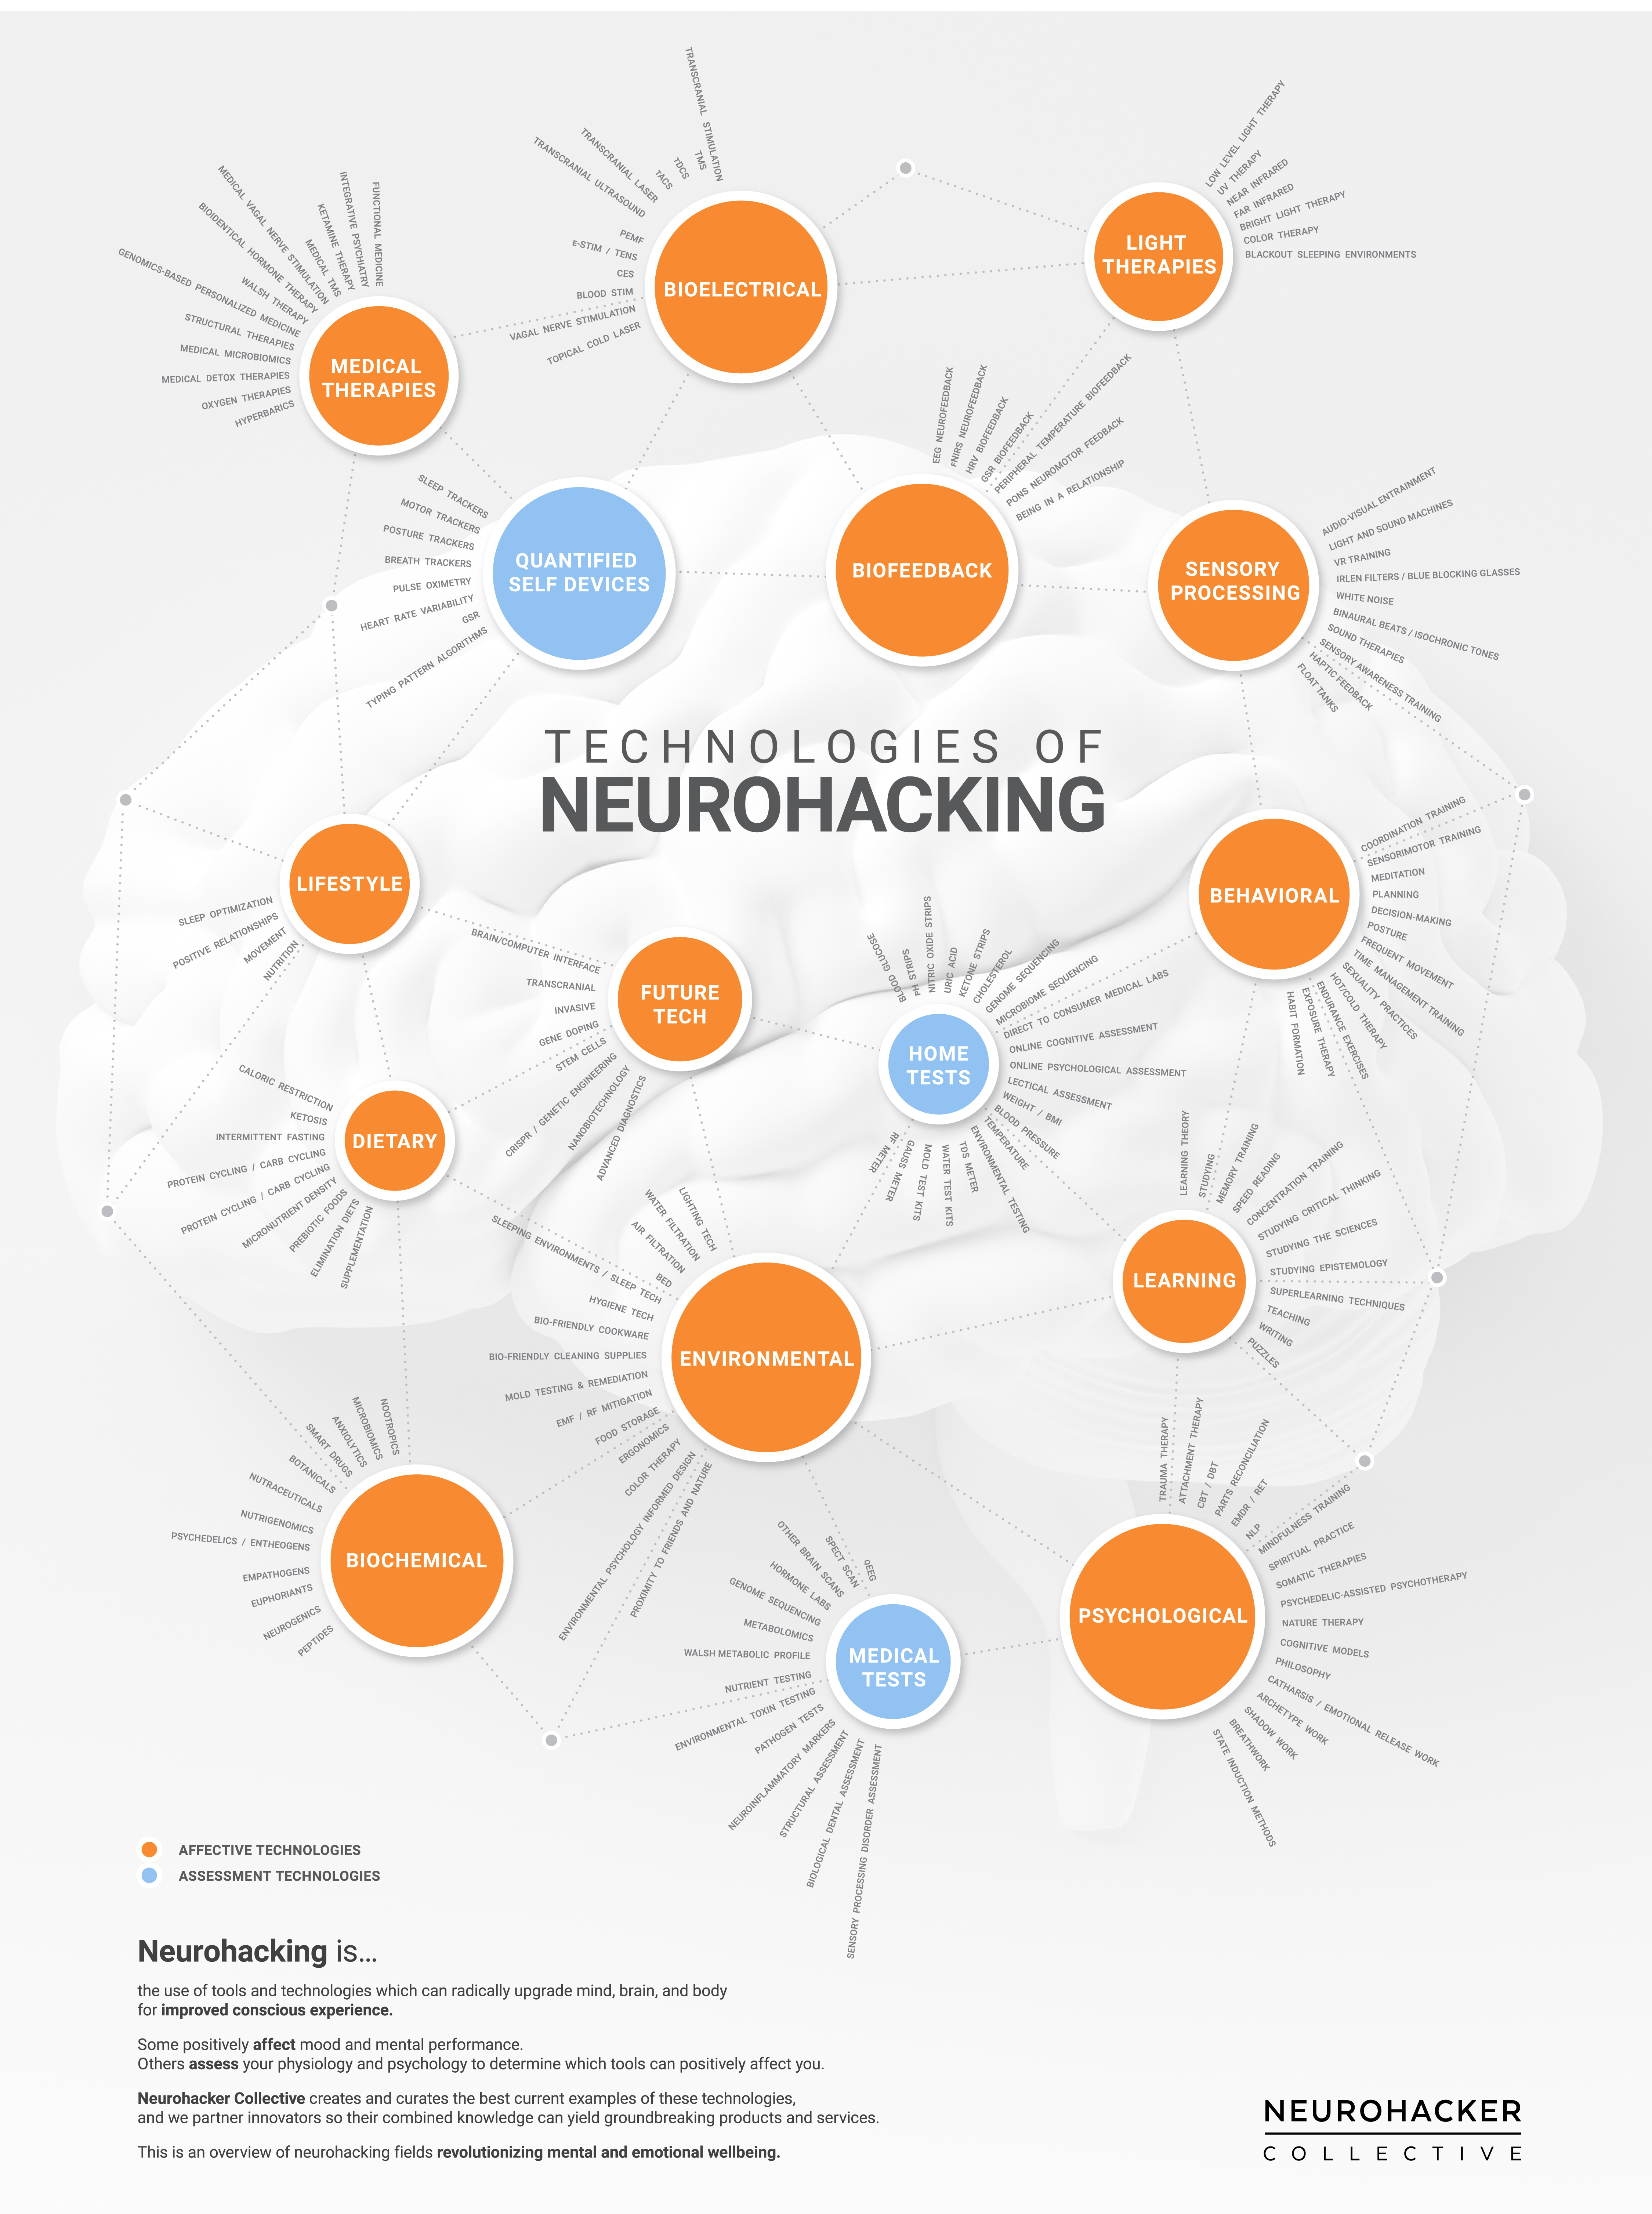 Technology for Neurohackers & Biohackers: Tools Designed to Upgrade